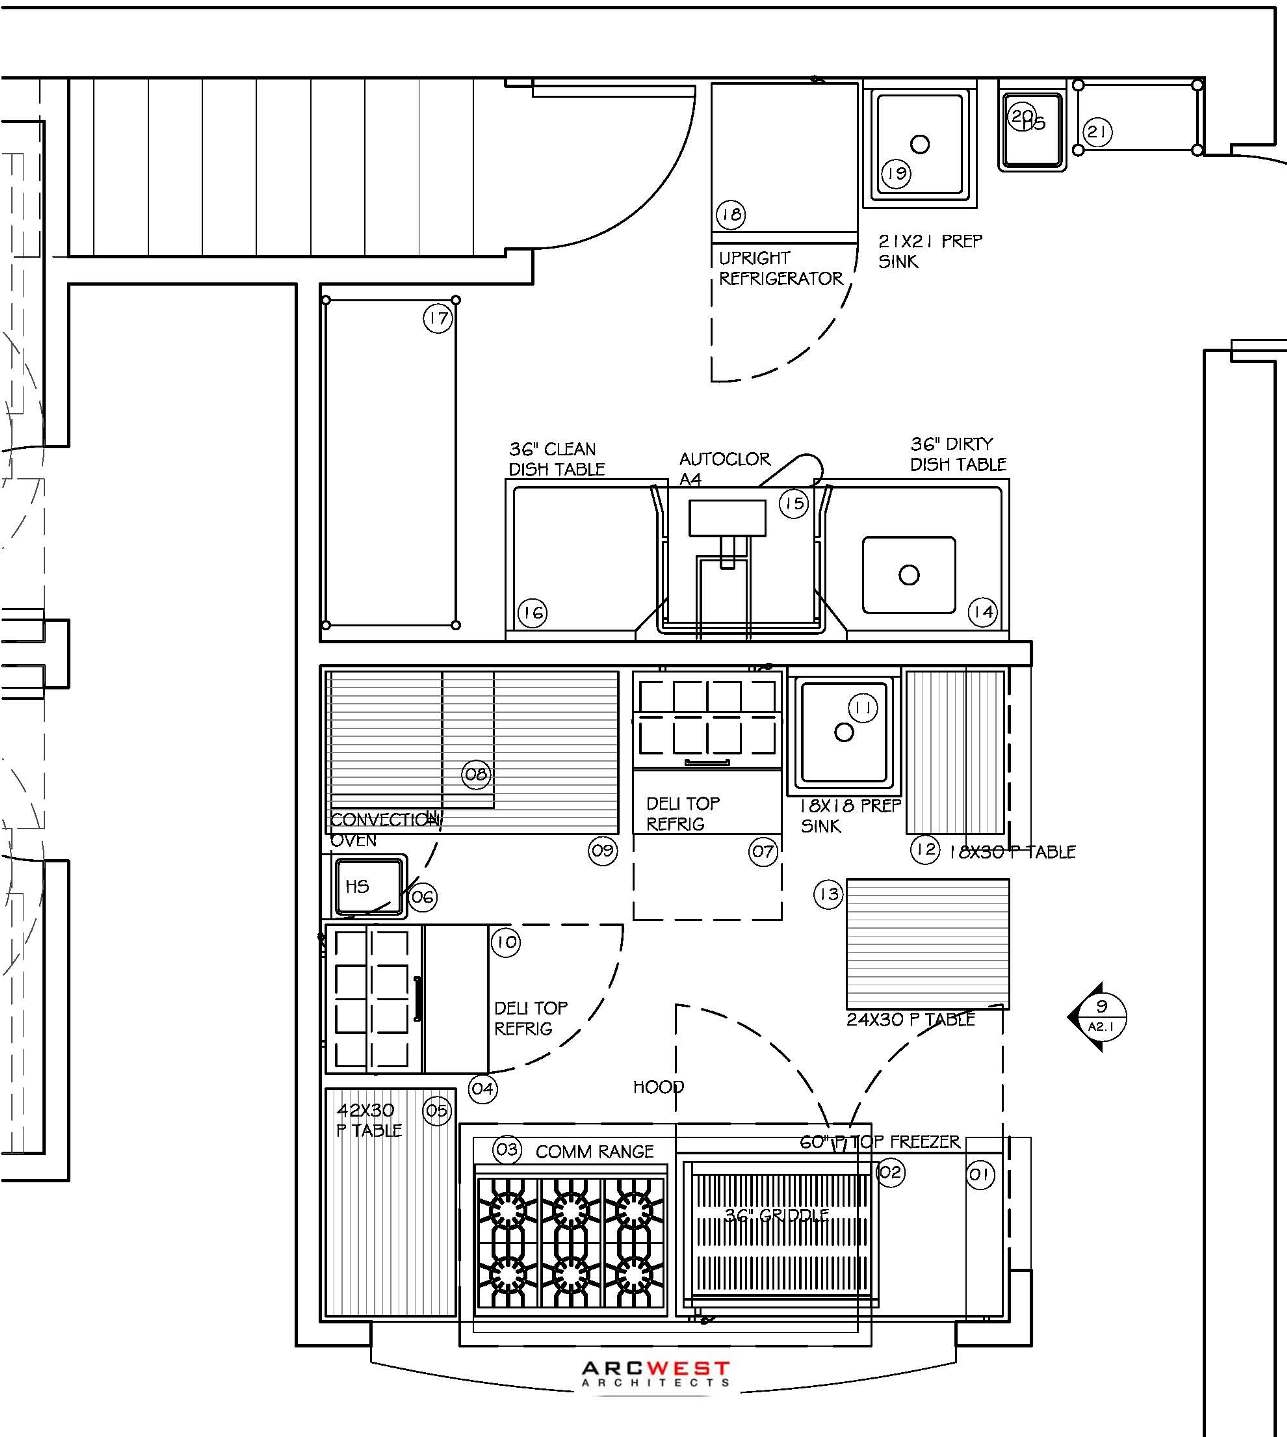 Kitchen Layout Plans For Restaurant: Commercial Redevelopment